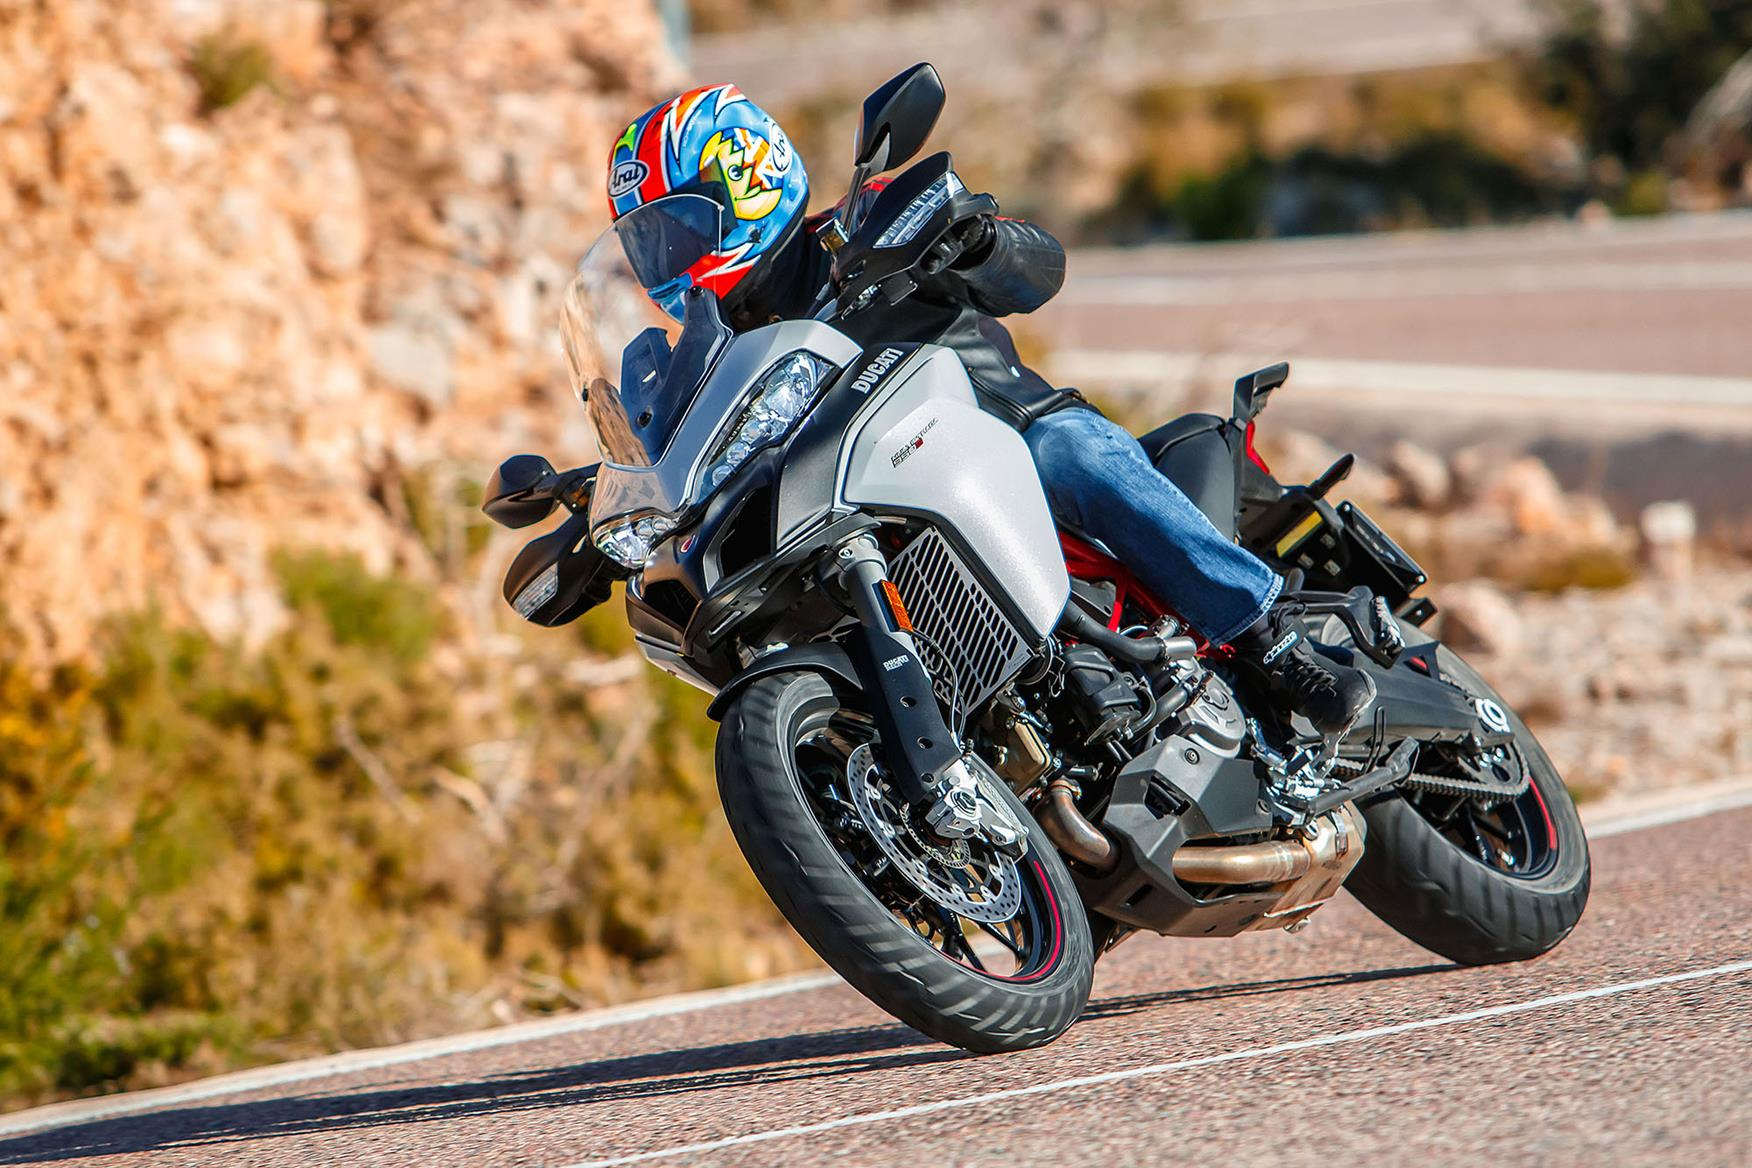 Astonishing Ducati Multistrada 950S 2019 On Review Caraccident5 Cool Chair Designs And Ideas Caraccident5Info